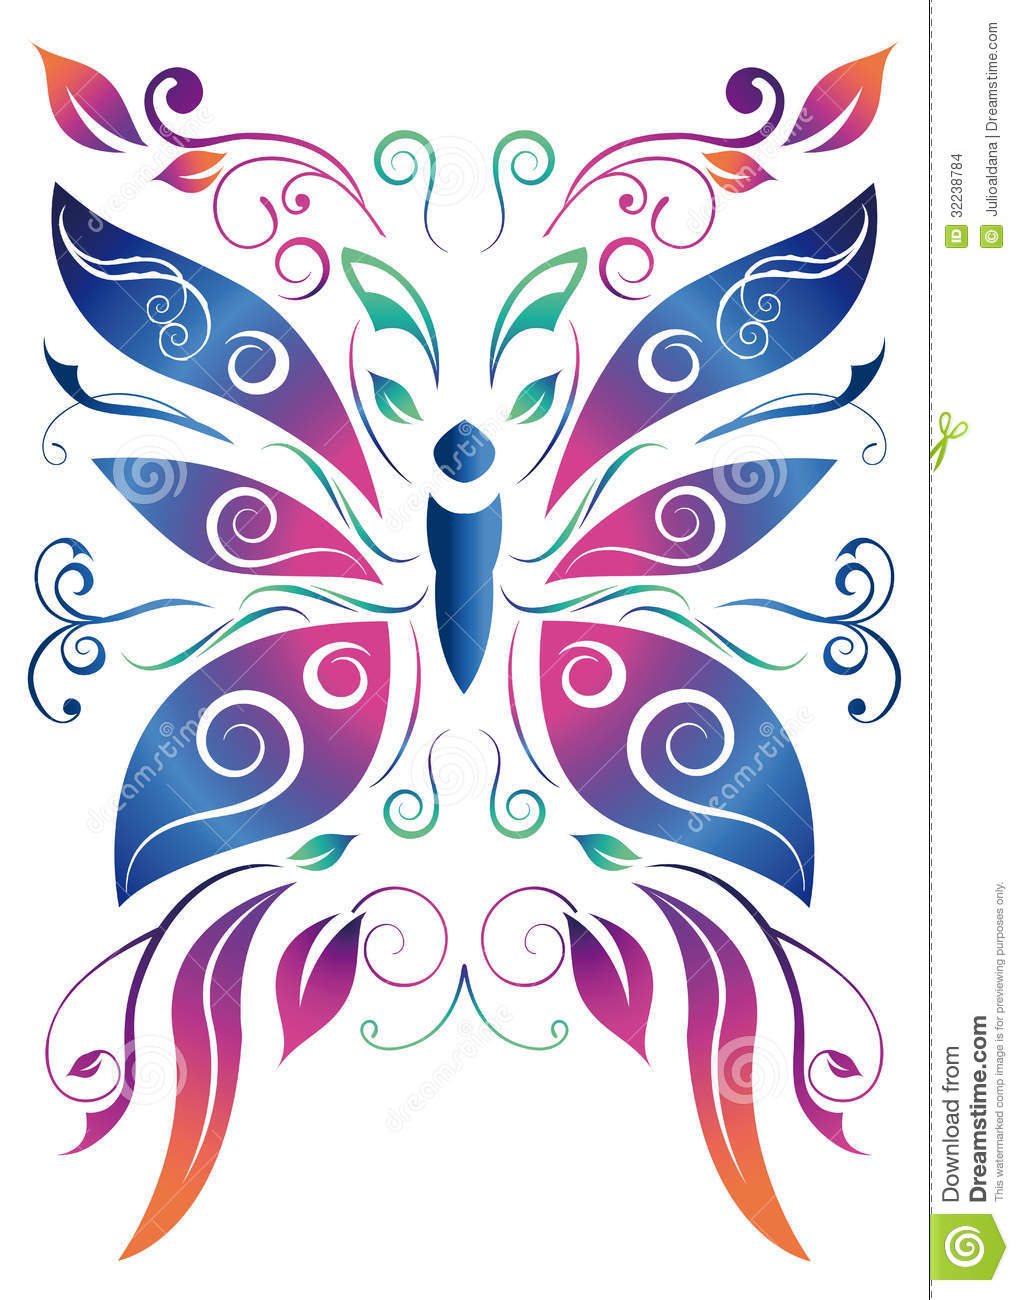 Abstract Butterfly Vector Floral Design